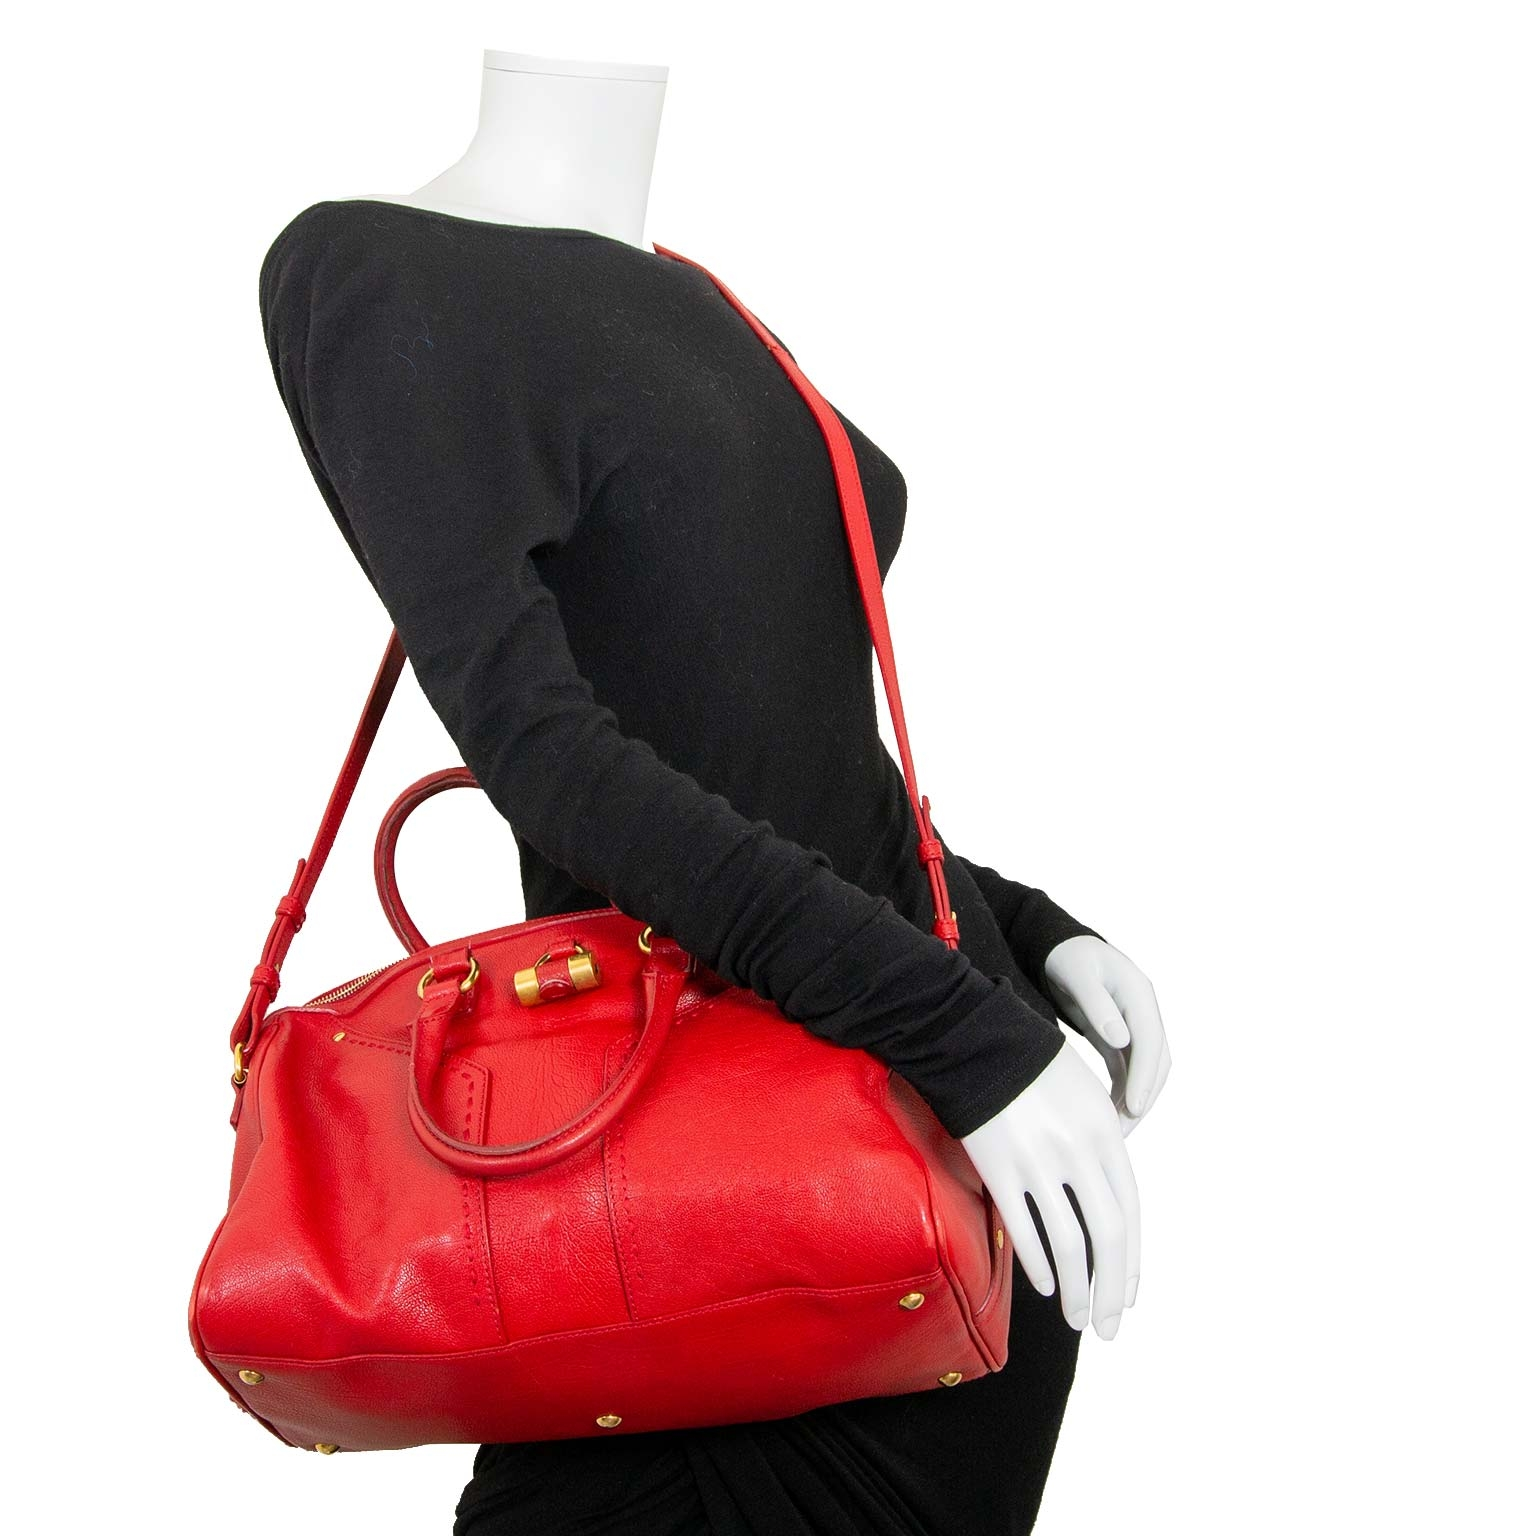 yves saint laurent red muse bowler bag now for sale at labellov vintage fashion webshop belgium